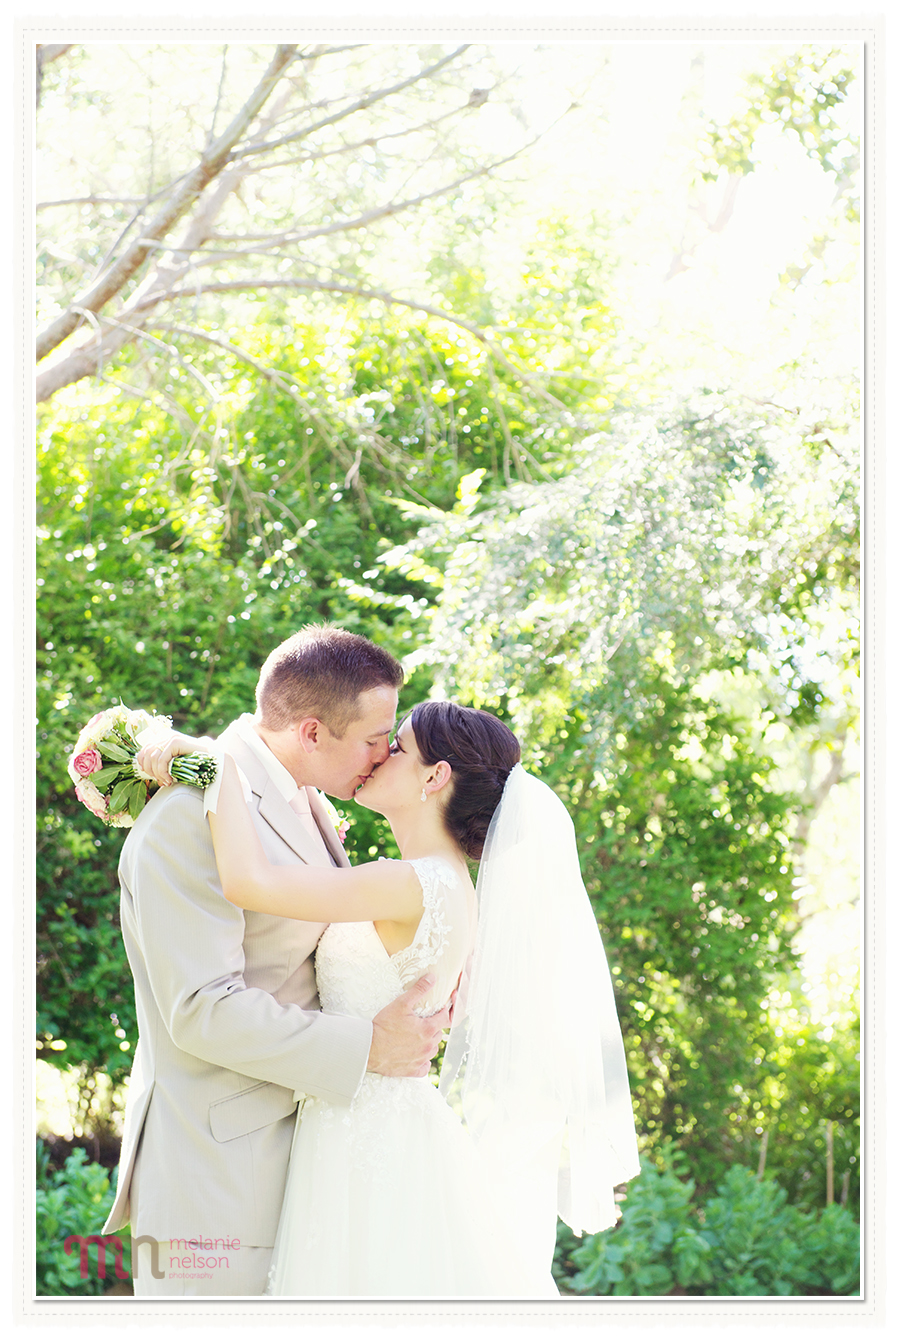 Wedding-Photographer-Adelaide-19a.jpg